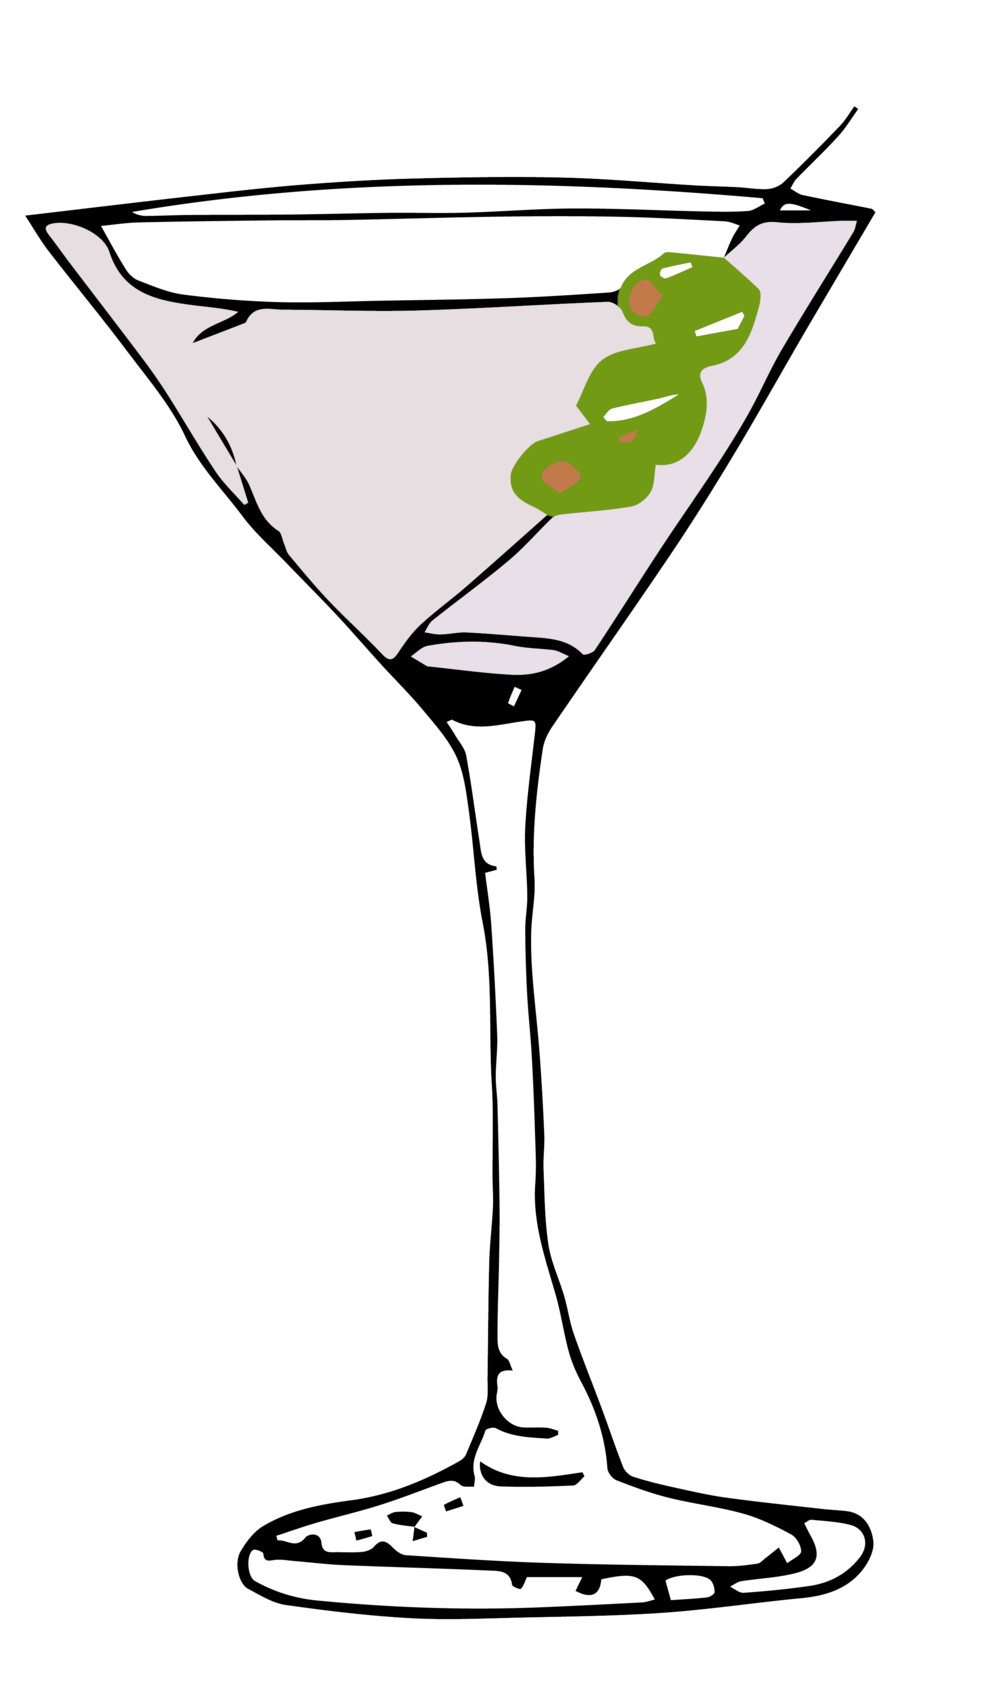 martini glass.png